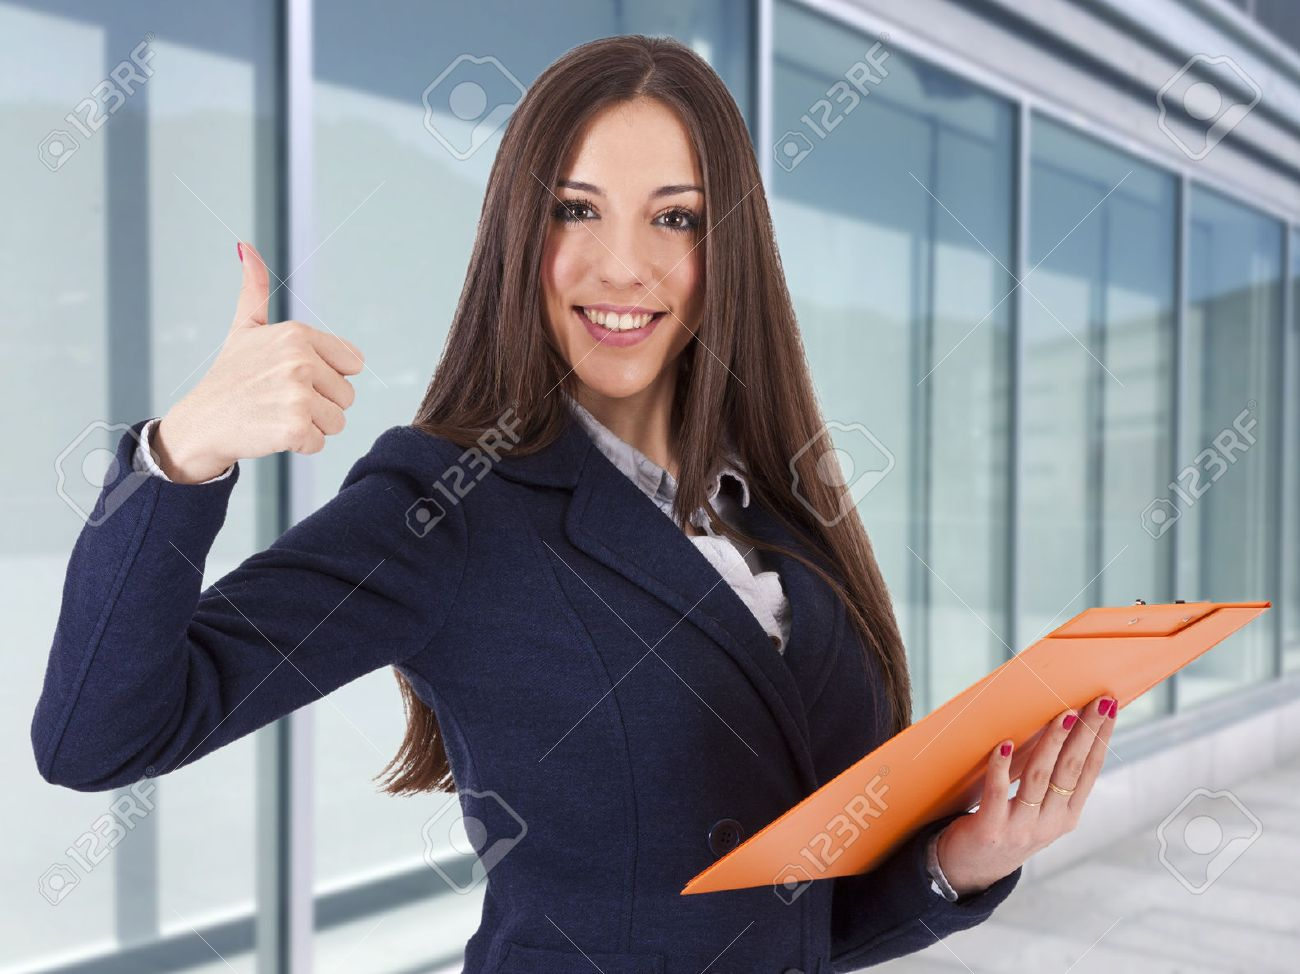 business woman in positive attitude, lifestyle - 39542702